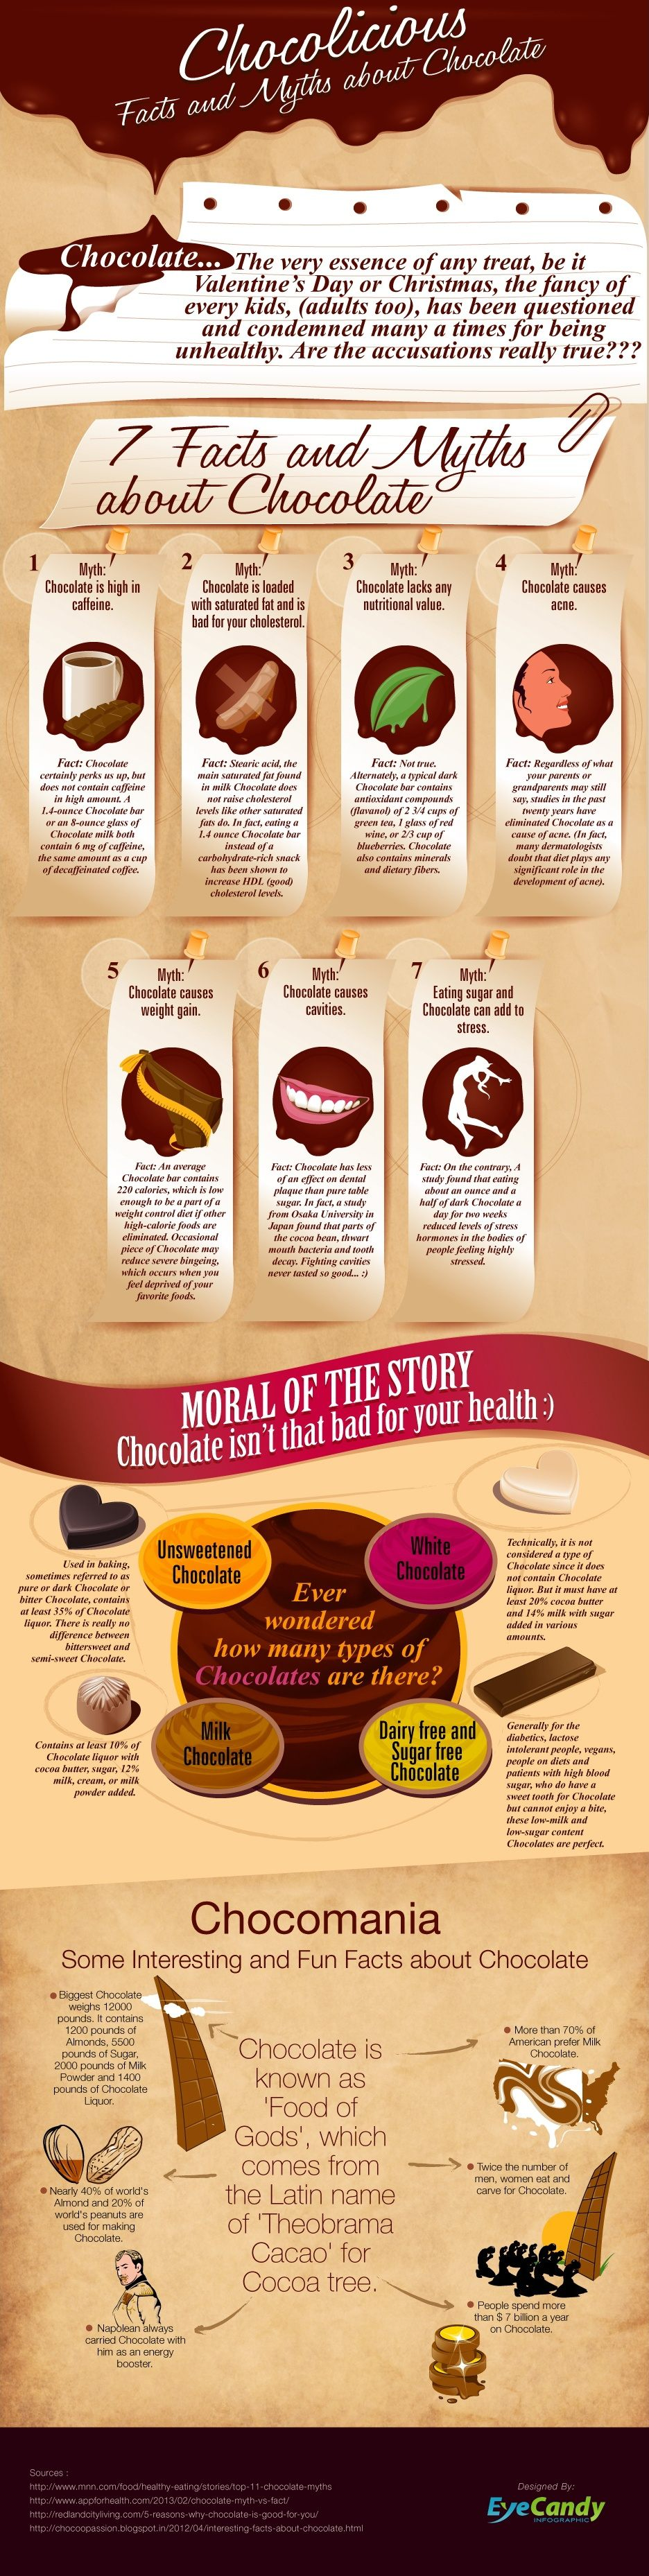 Facts And Myths About Chocolate Infographic